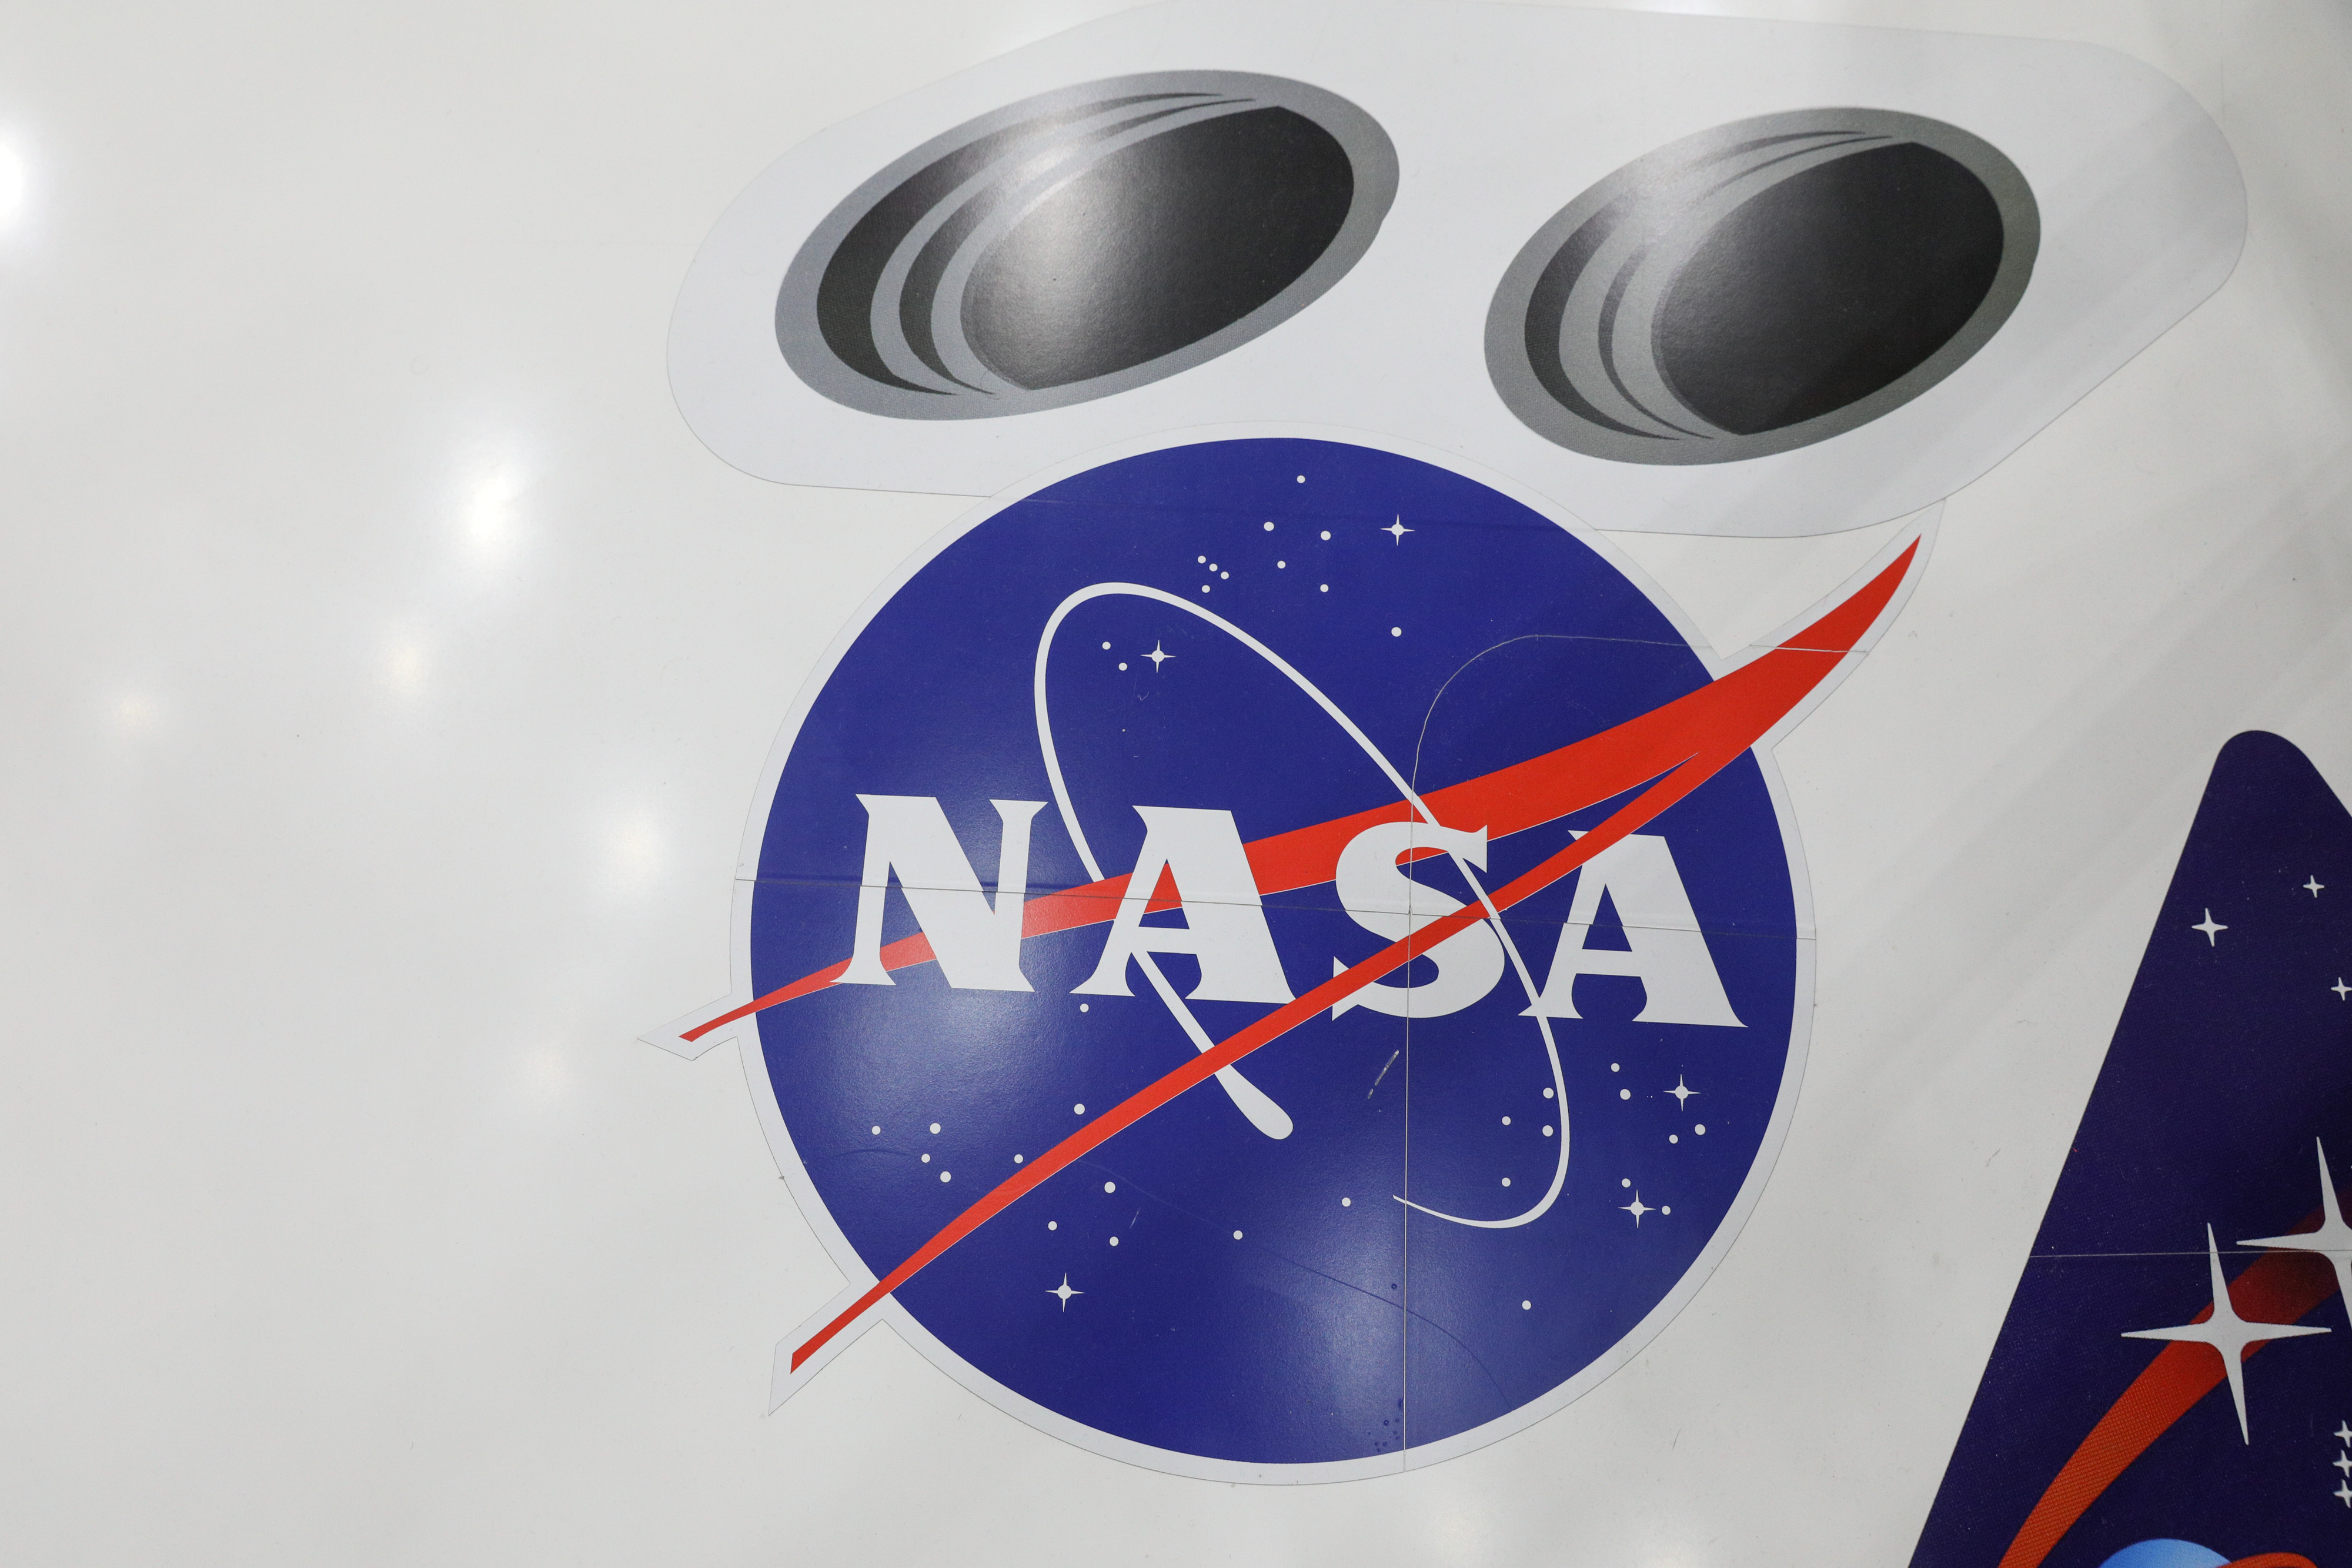 NASA Gets Woke by Changing Racist Star Names and Its Headquarters' Name